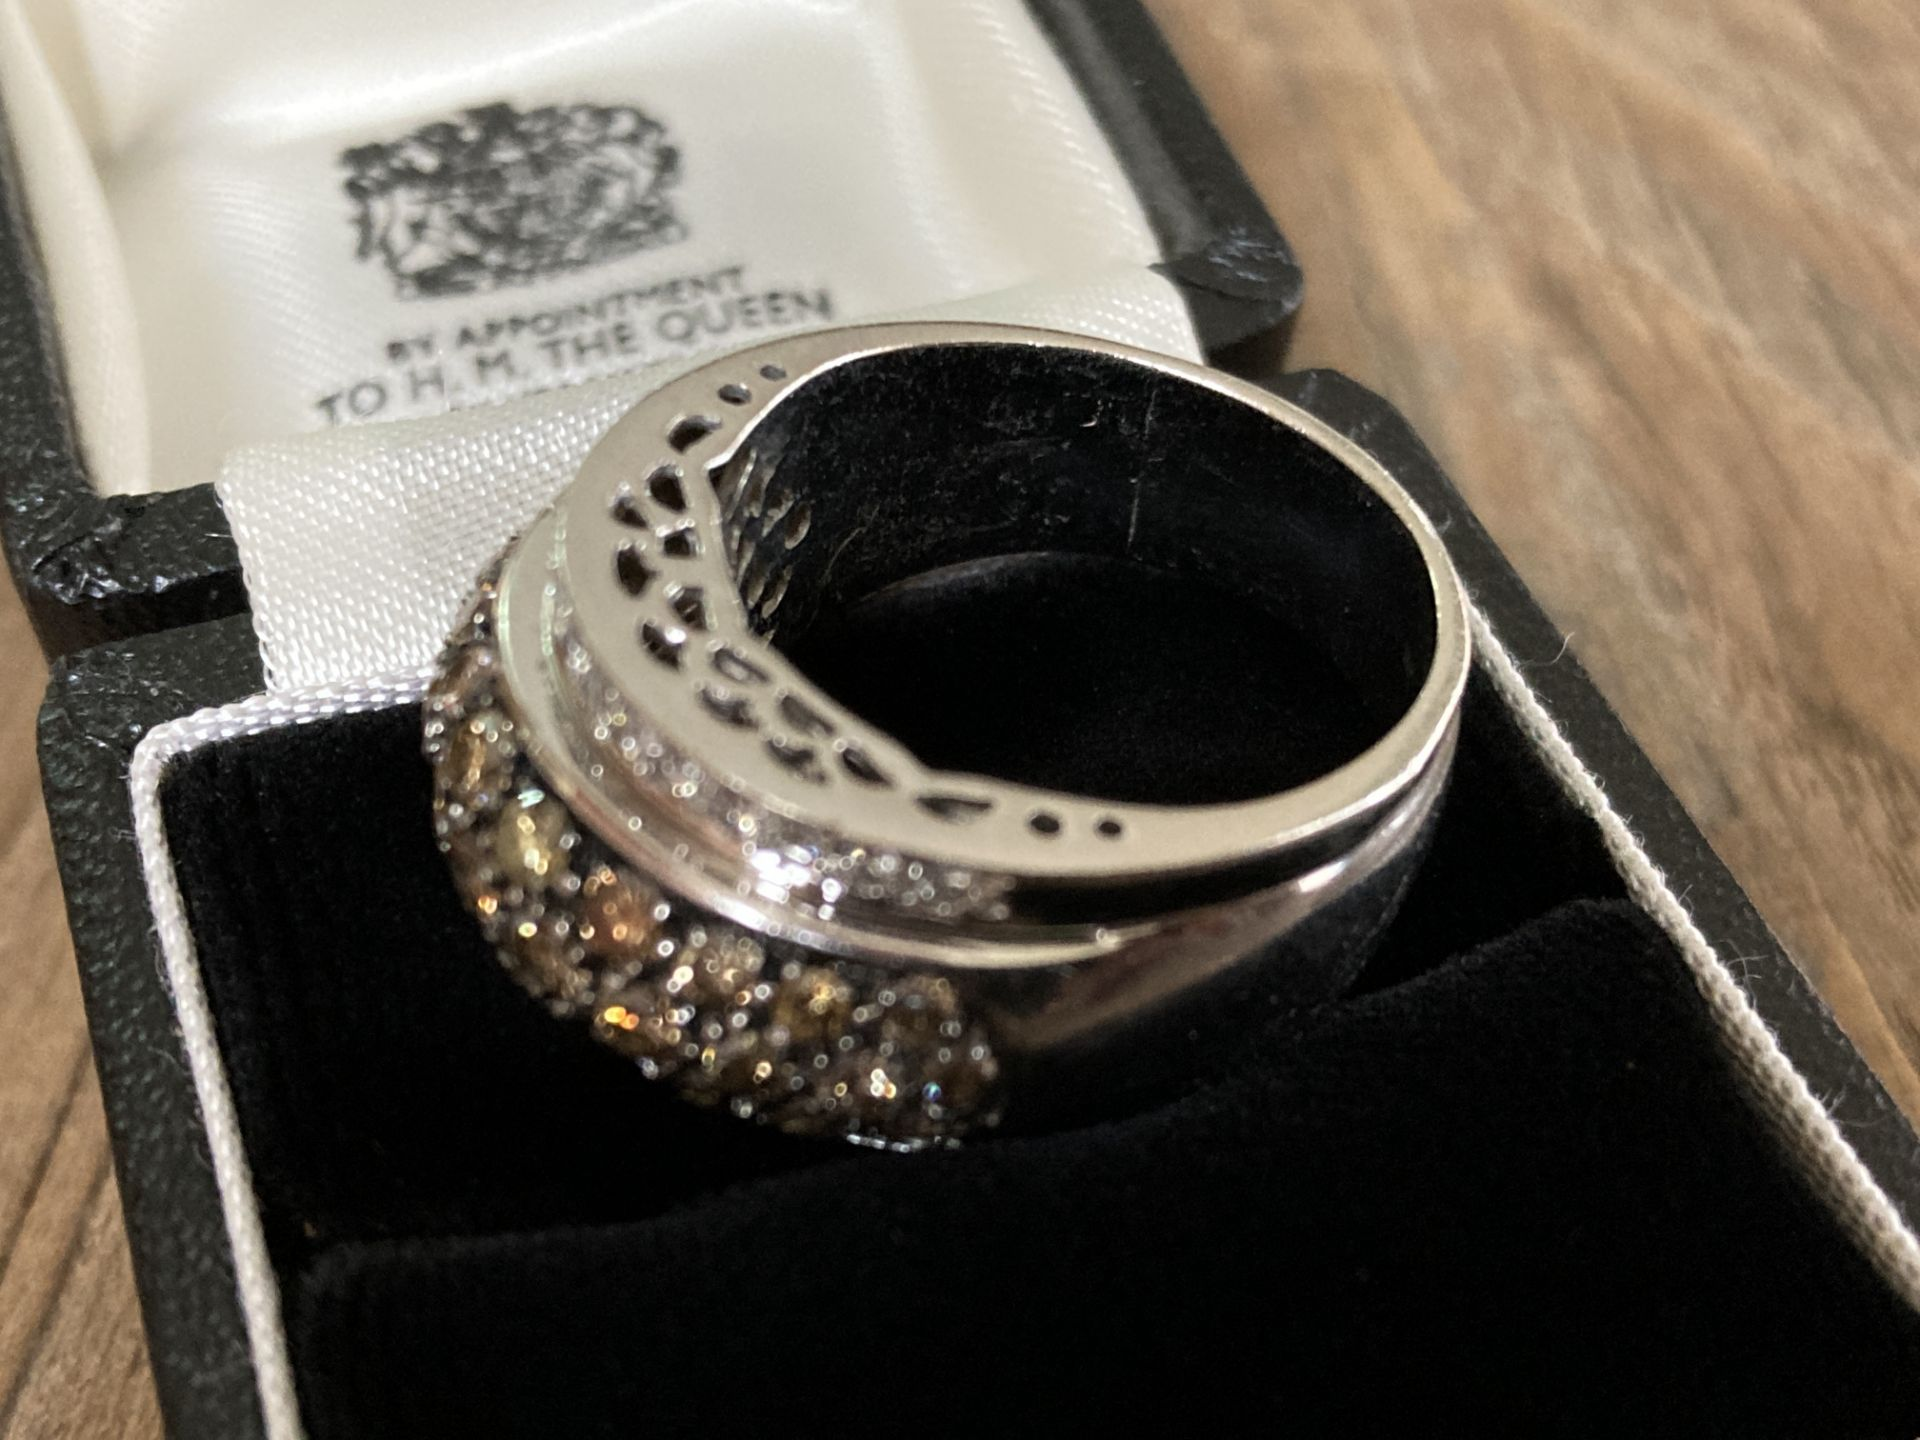 18CT WHITE GOLD 2.5CT BRILLIANT CUT DIAMOND RING (MIXED COLOUR DESIGN) - SIZE: T 1/2 / WEIGHT: 18.6G - Image 5 of 6